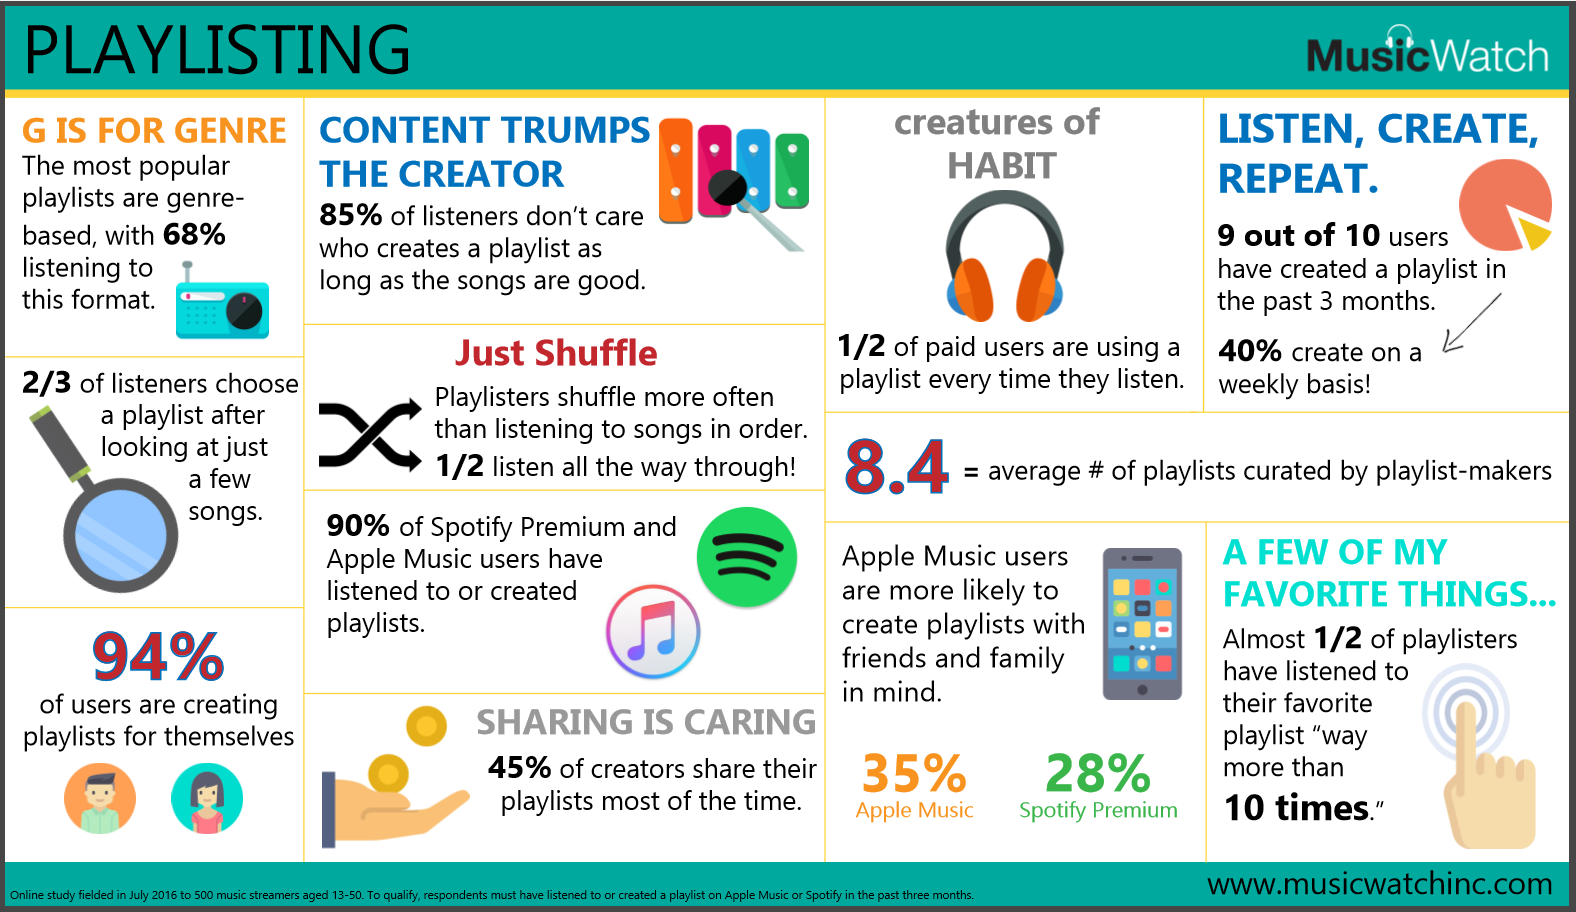 New Study Reveals How Music Streamers Listen To Playlists